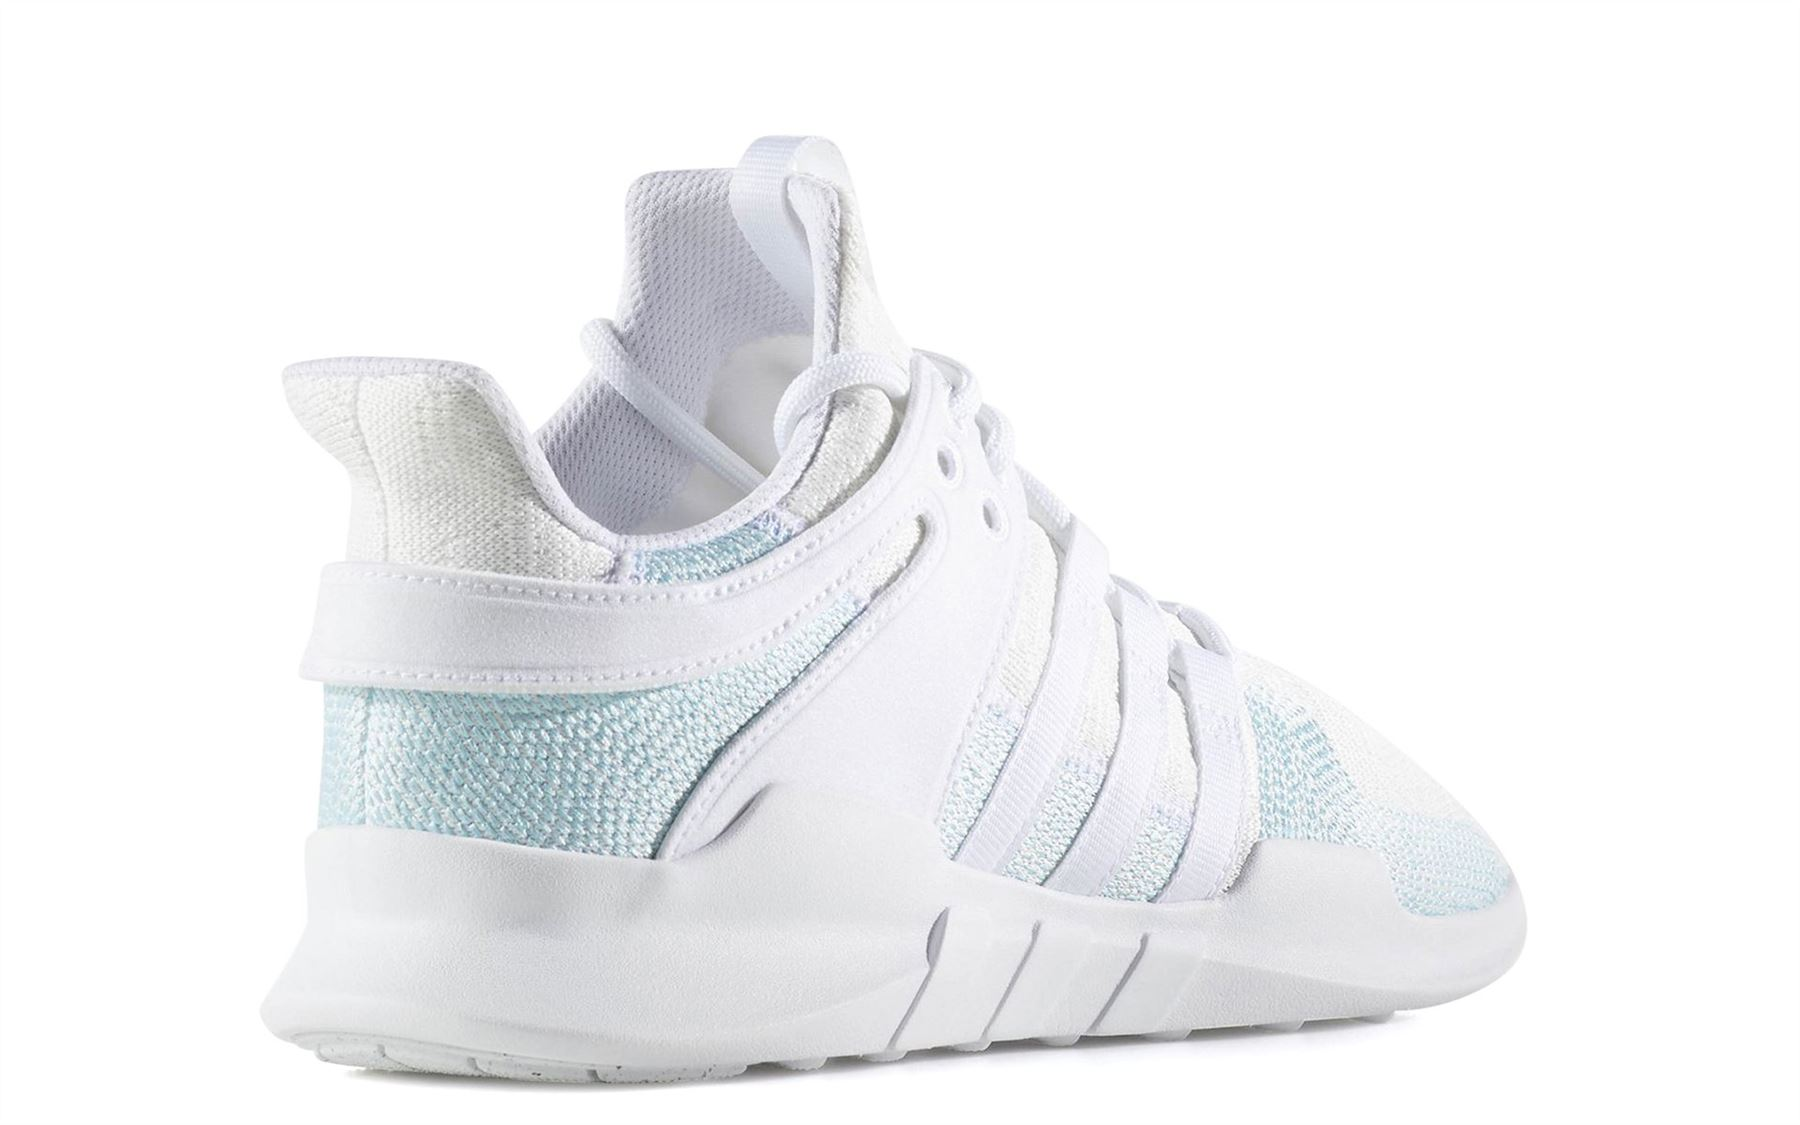 adidas-EQT-Support-ADV-Mens-Trainers-Originals-RRP-90-SAVE-039-S-MOST-SIZES